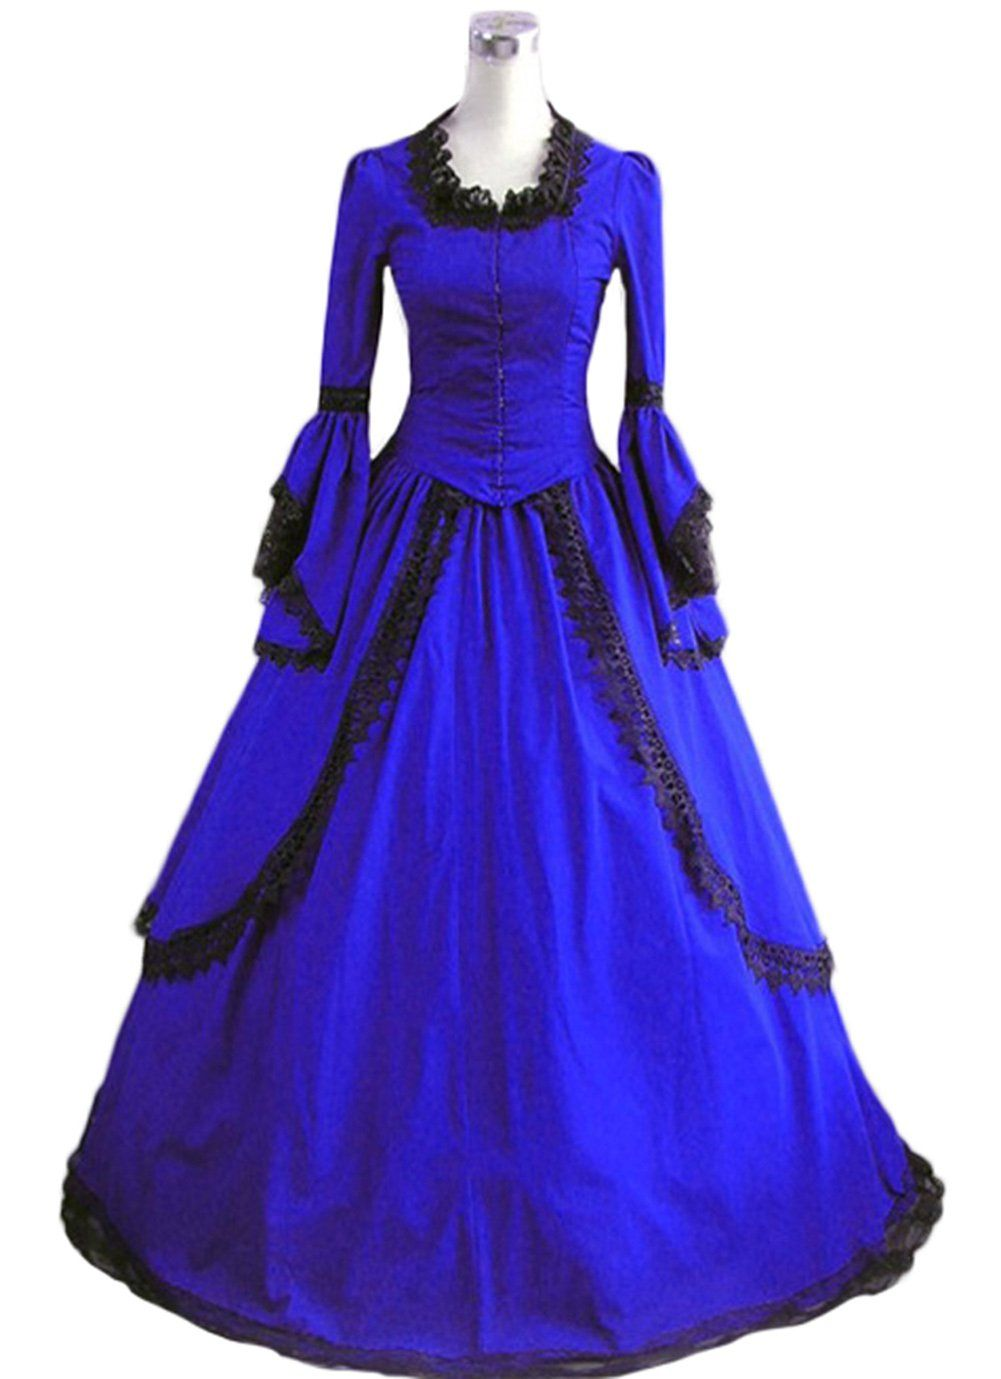 Southern Belle Ball Gown Victorian Party Dress Adult Women Halloween Costume   ae06a4523b82